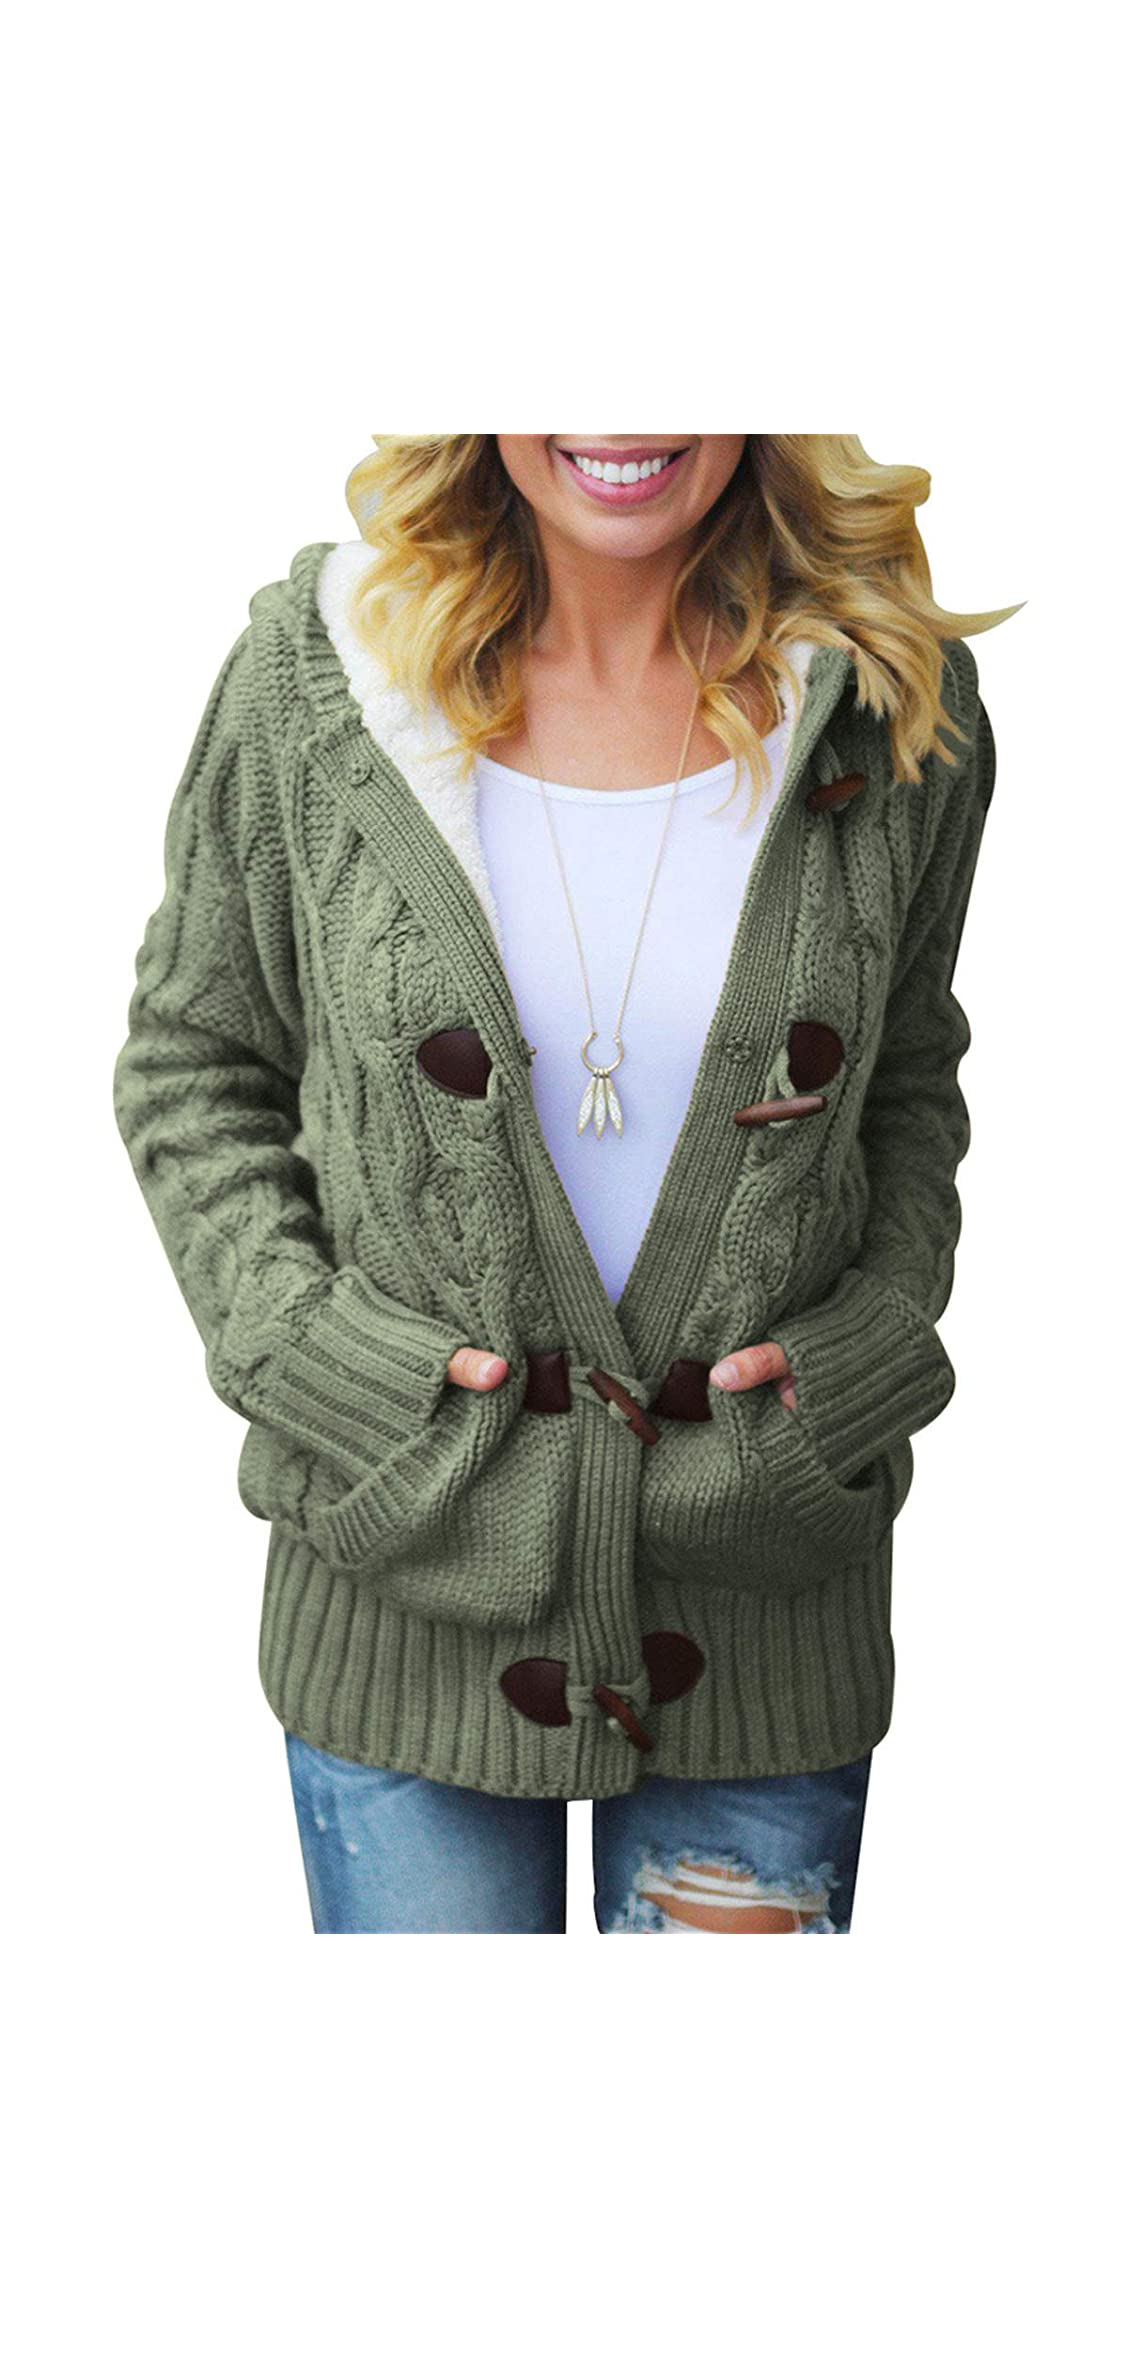 Women Fleece Knit Hooded Cardigans Button Up Cable Soft